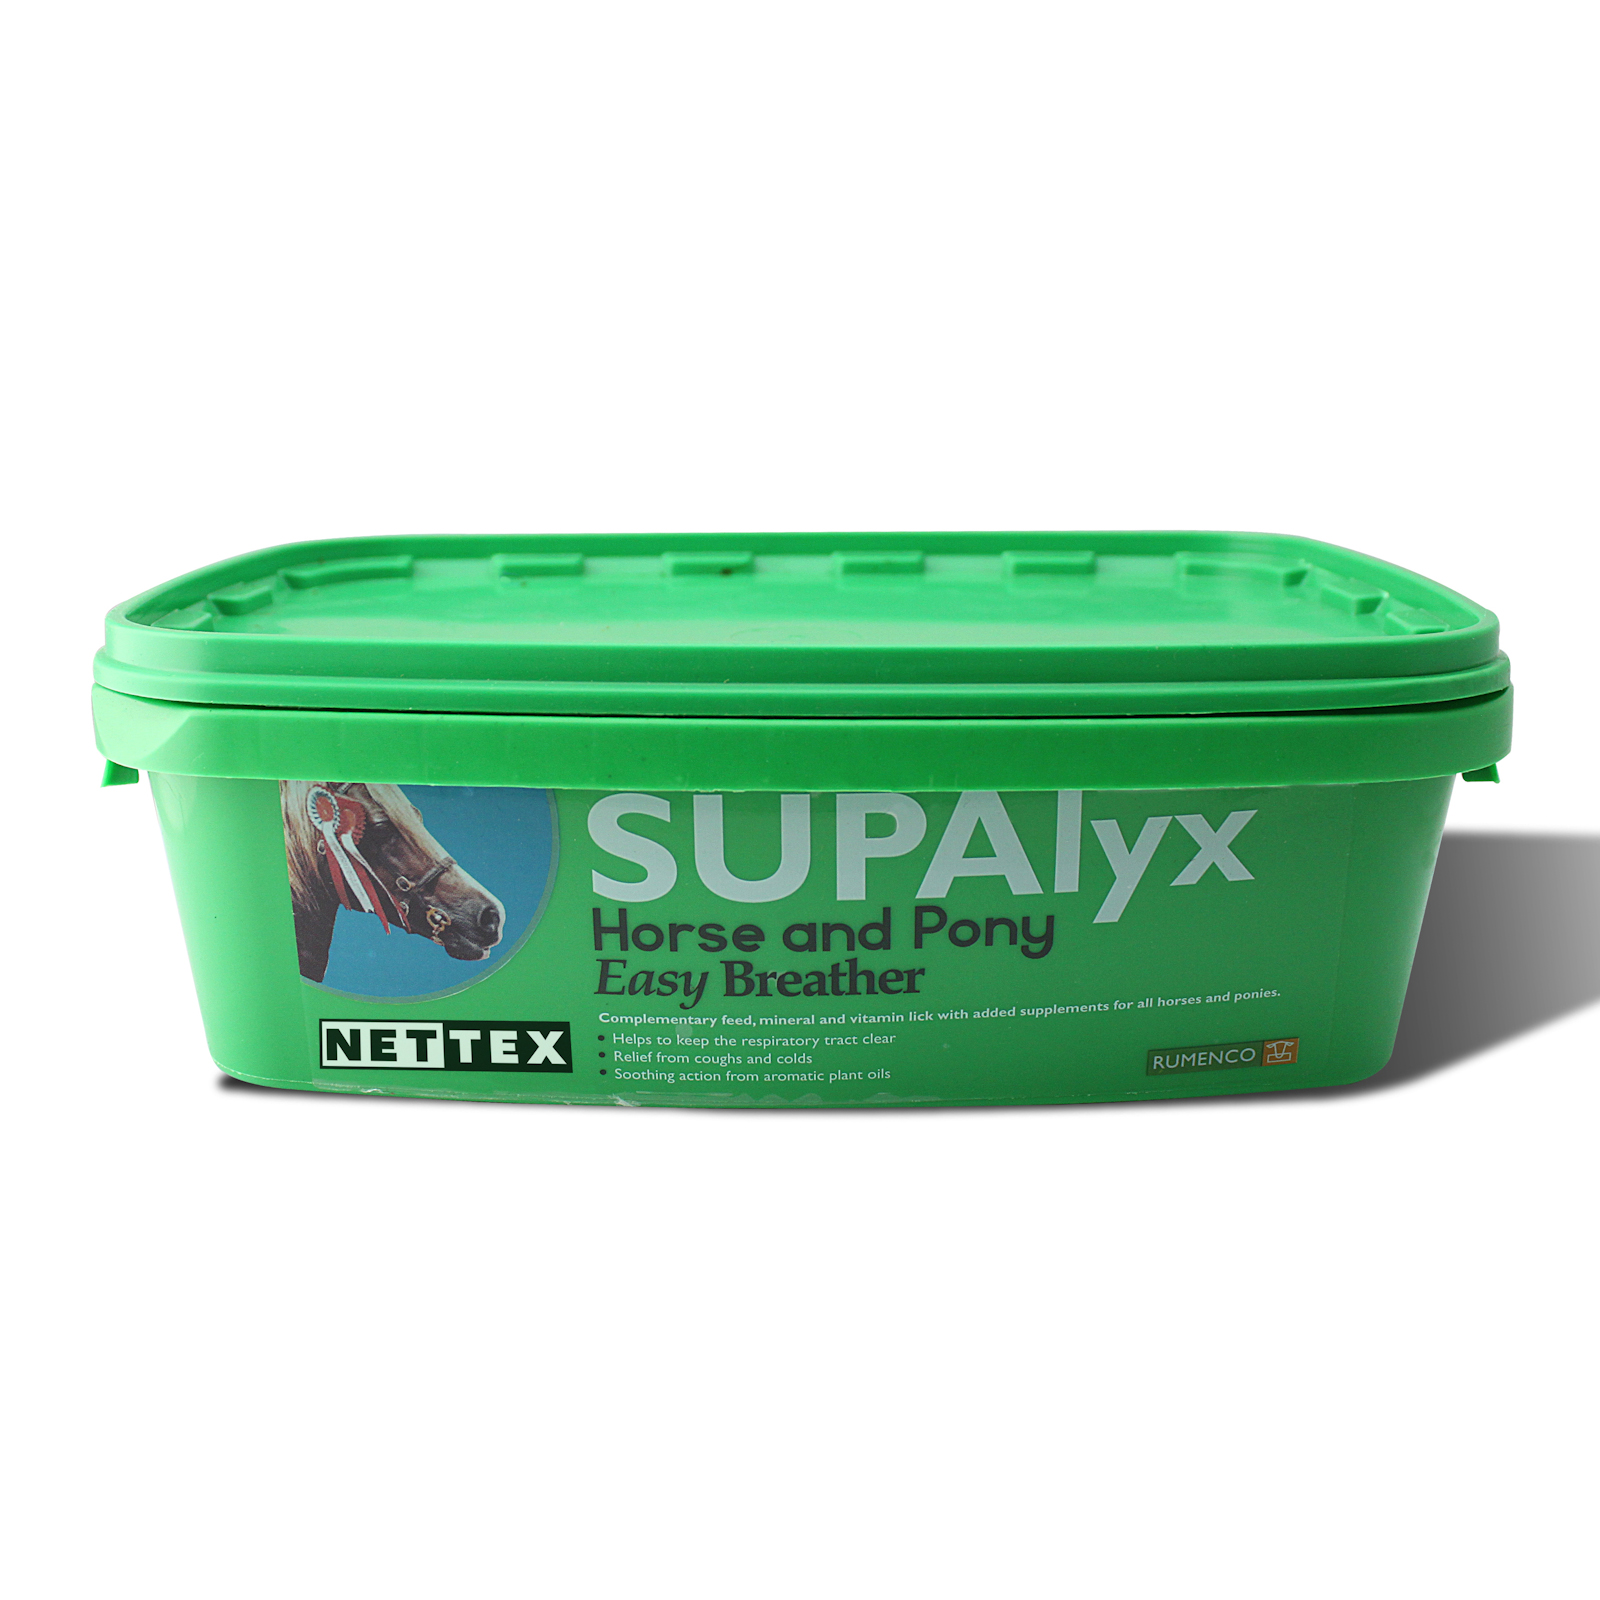 Nettex Supalyx Easy Breather 3 kg